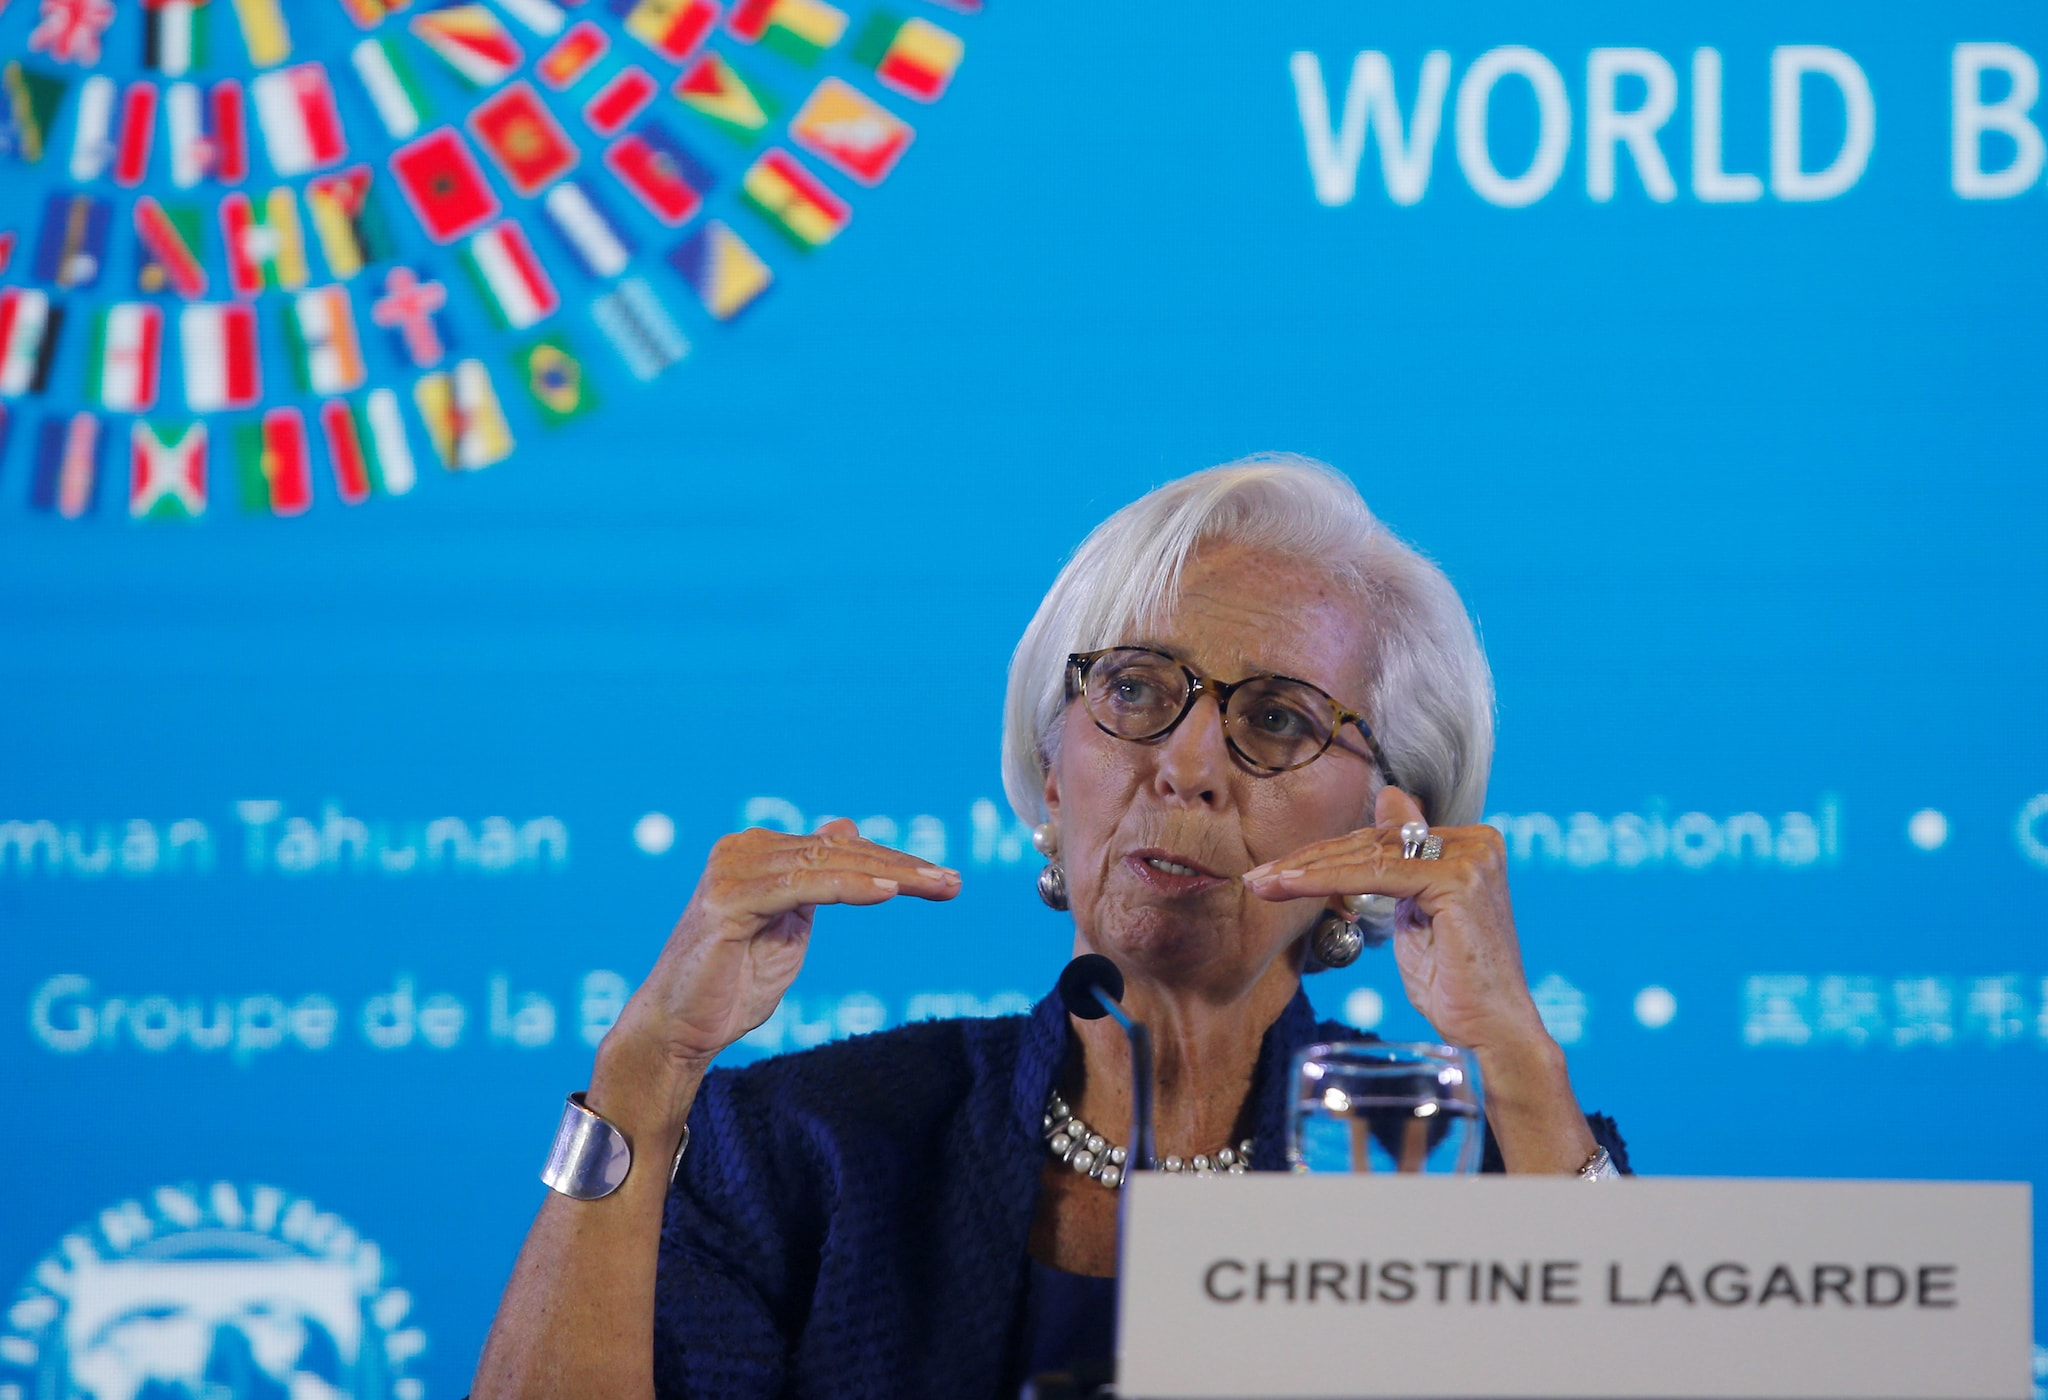 10. IMF Chief Christine Lagarde On US-China Tensions: The head of the International Monetary Fund said Tuesday that fresh trade tensions between the United States and China were the main threat to the world economy.